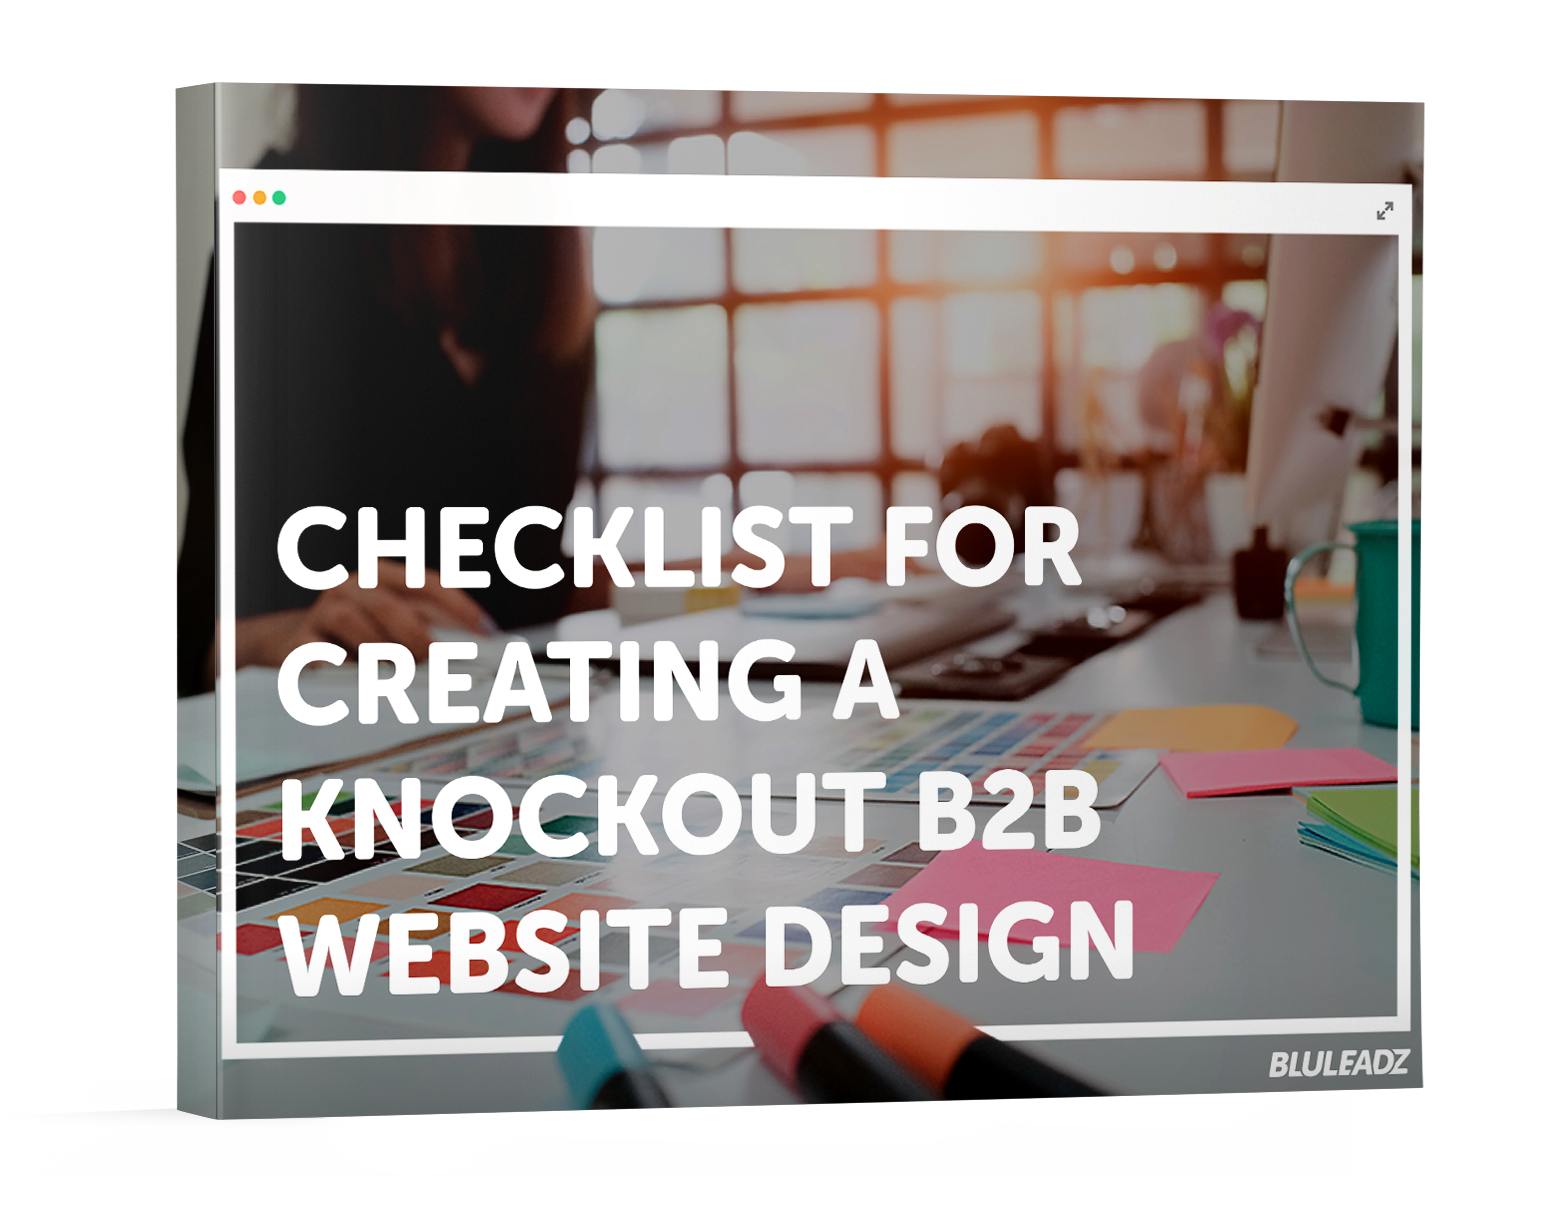 b2b-web-design-checklist-3d--large